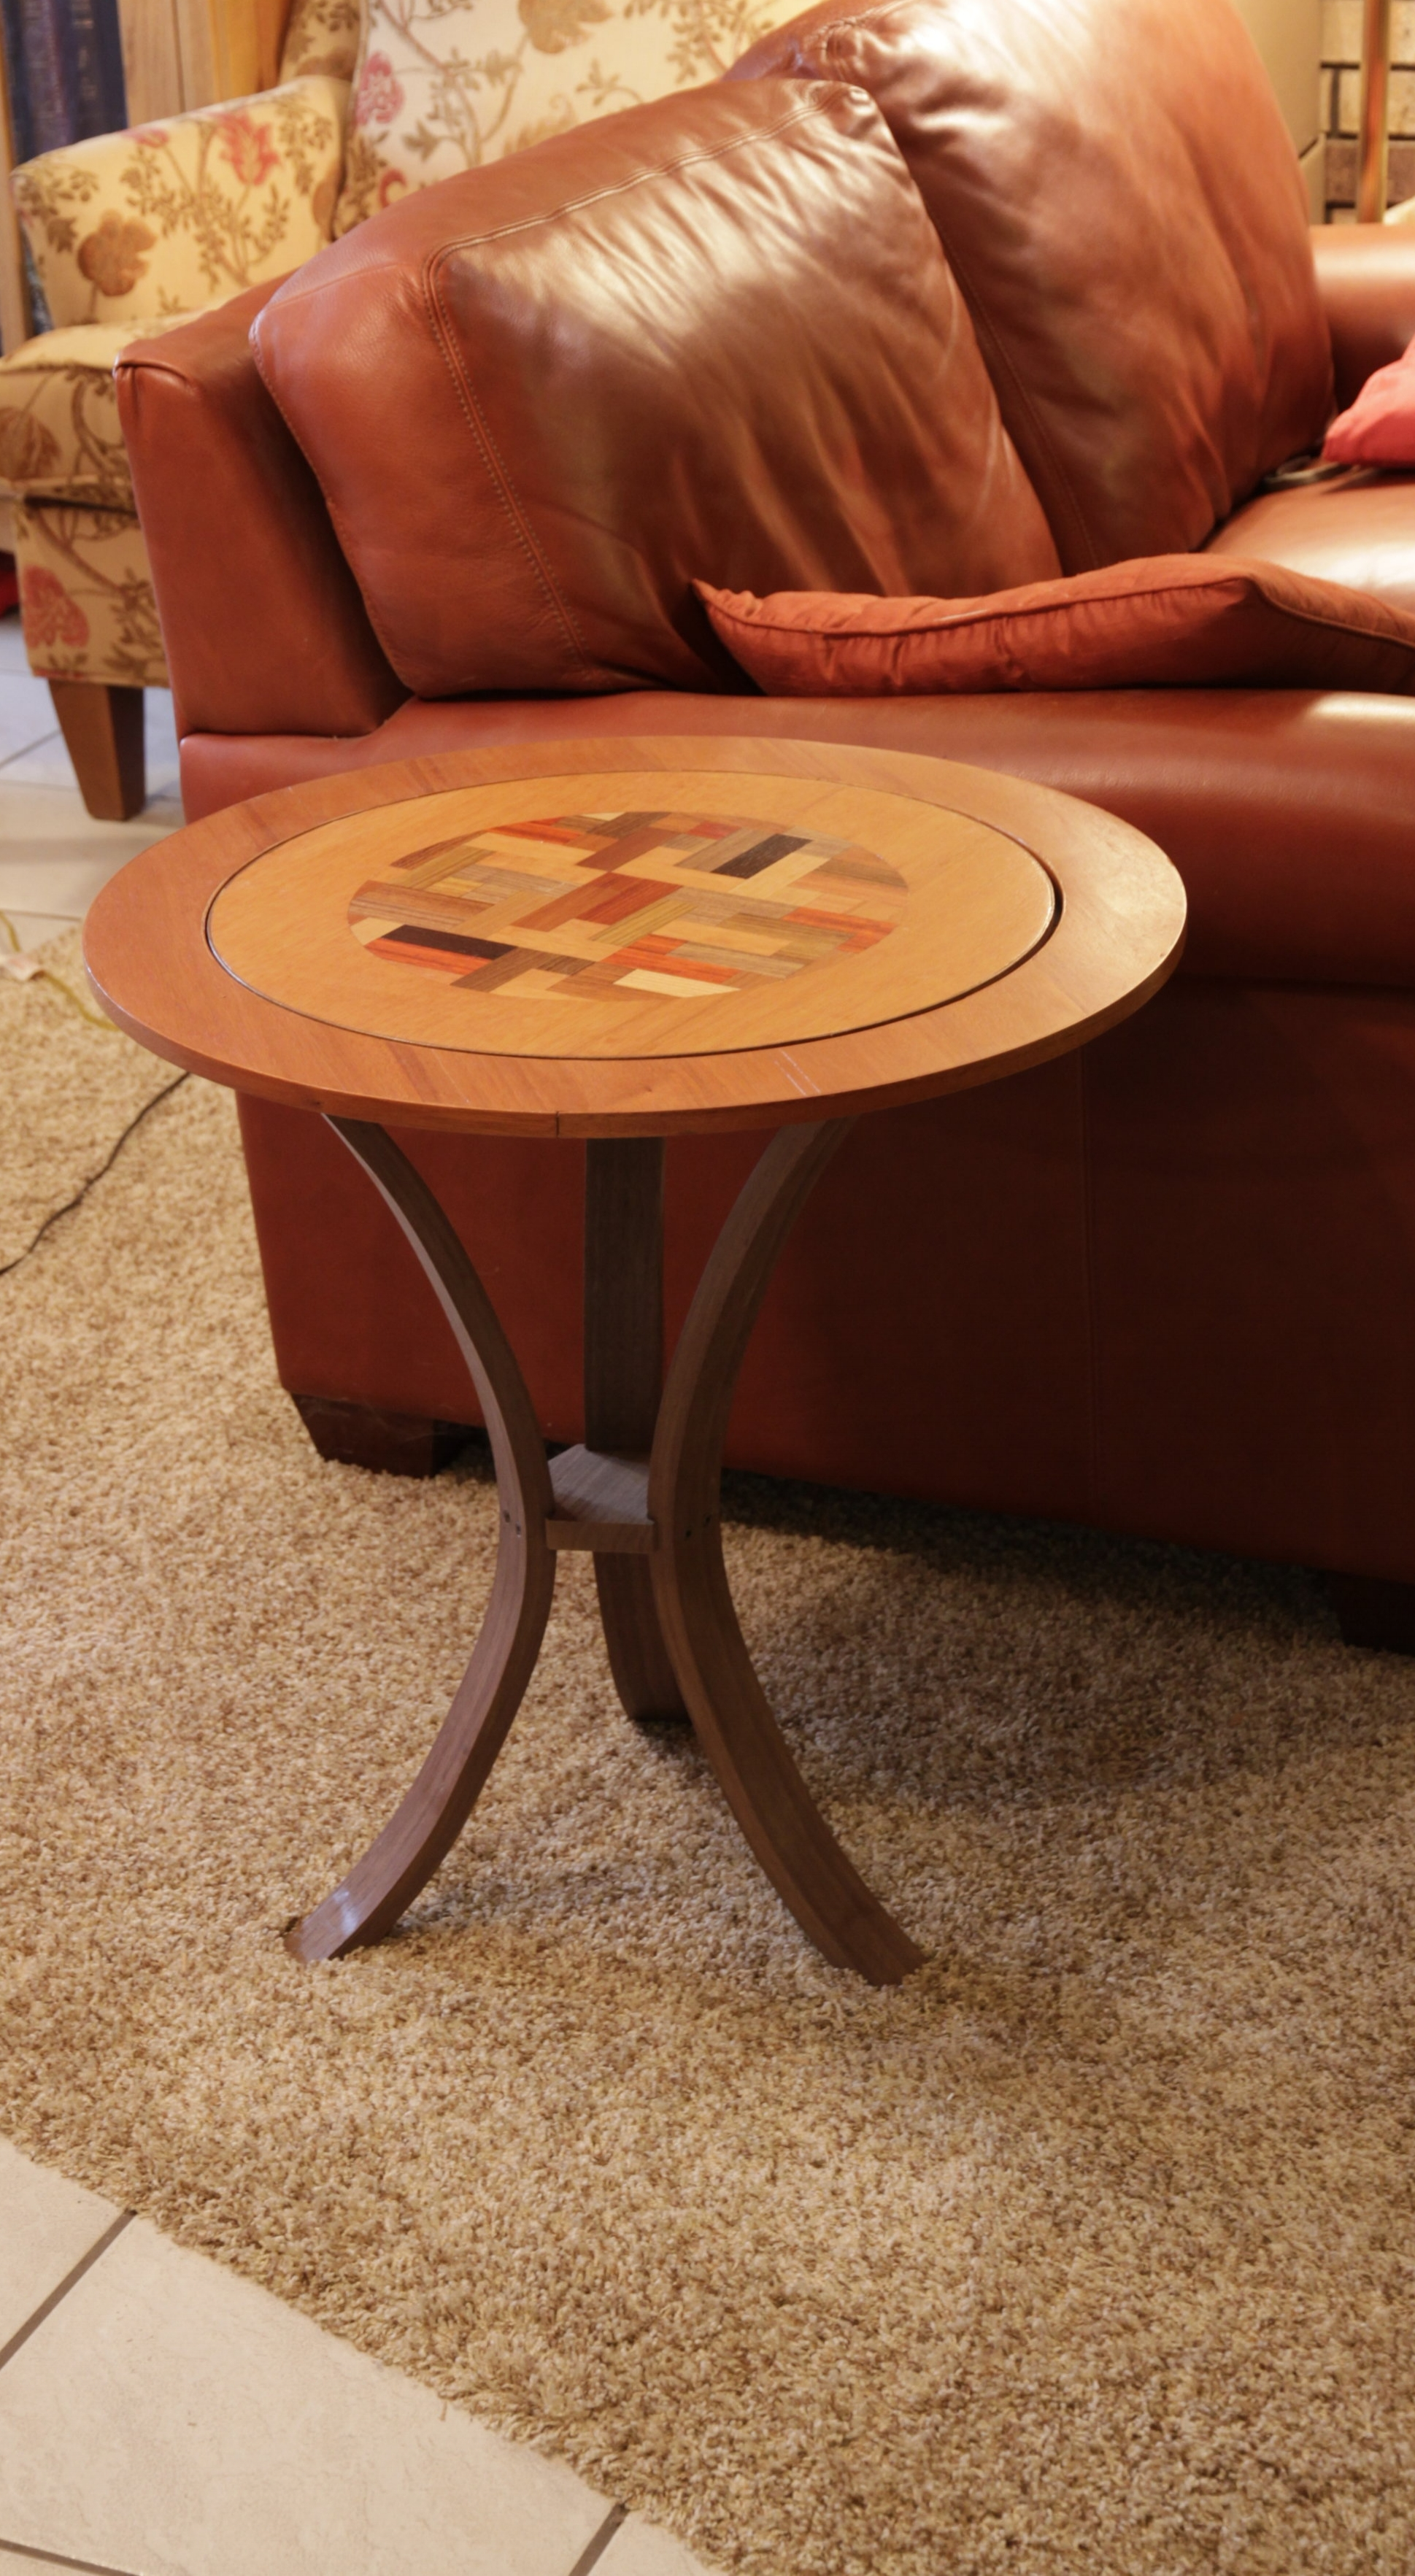 See how an 18 inch Spin-N-Serve can be combined with an expansion ring to make a table! -